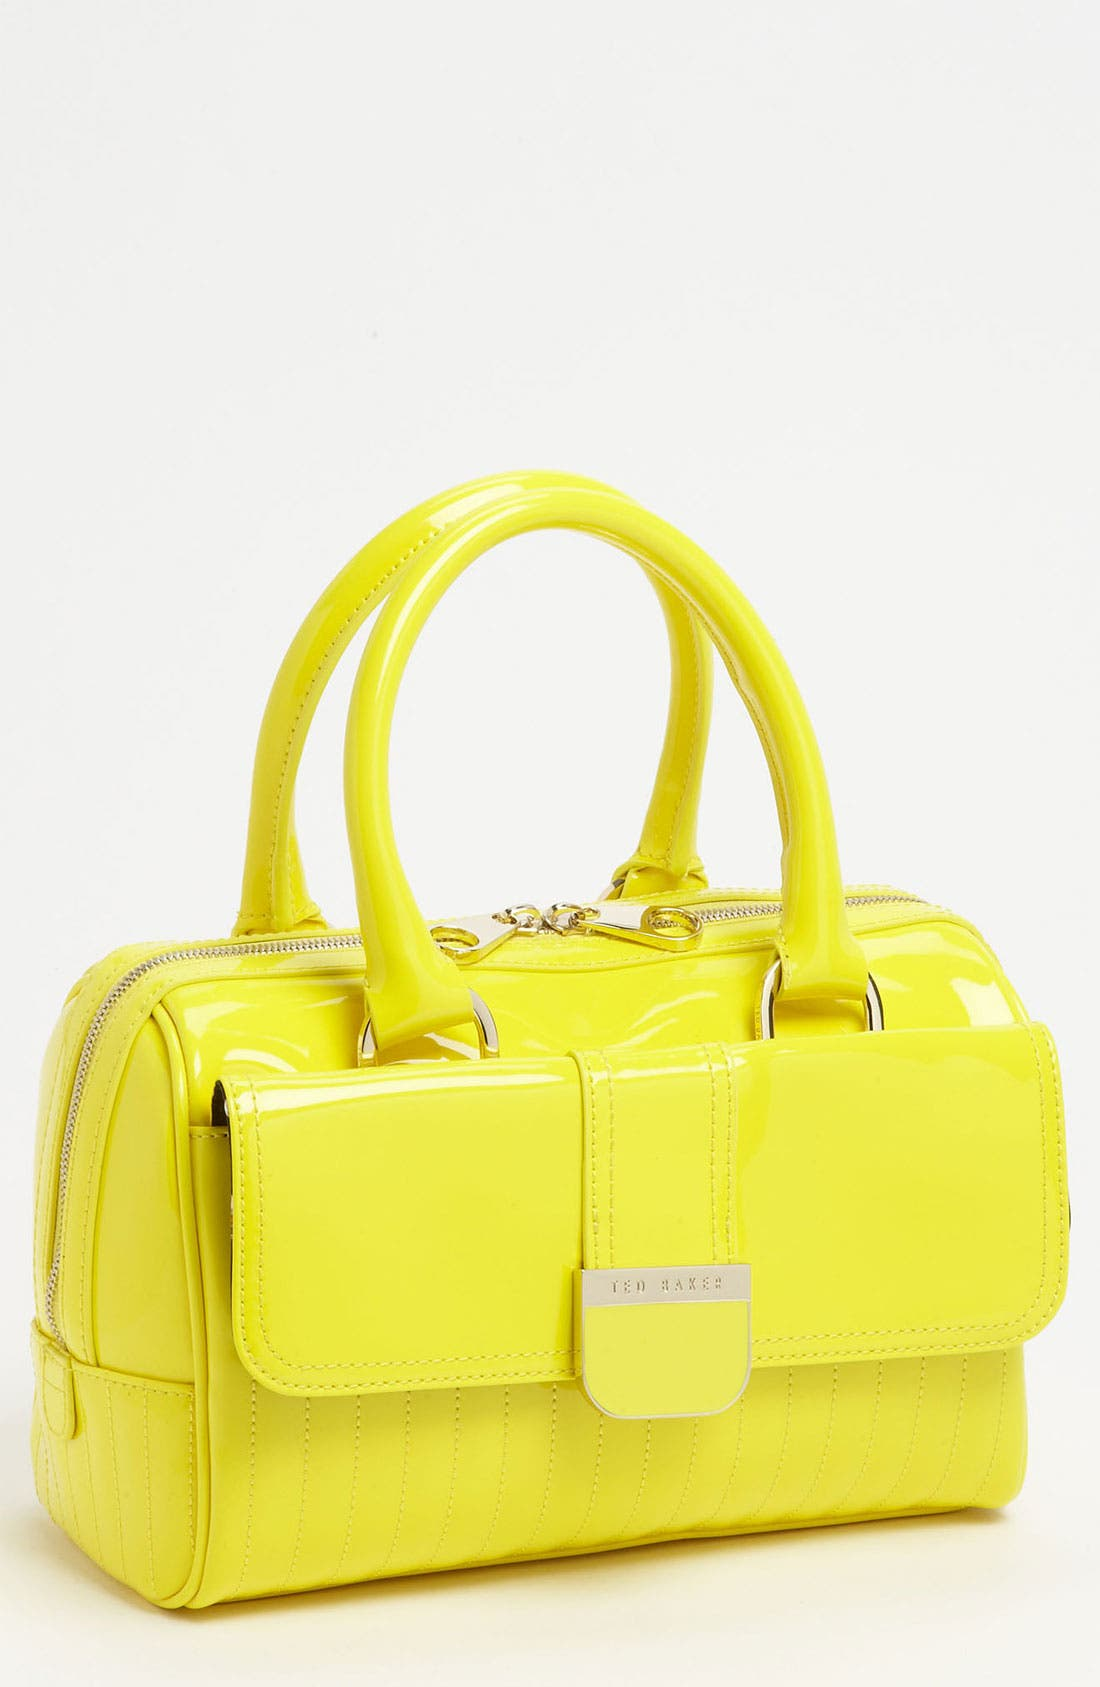 Alternate Image 1 Selected - Ted Baker London 'Enamel - Mini' Quilted Bowler Bag